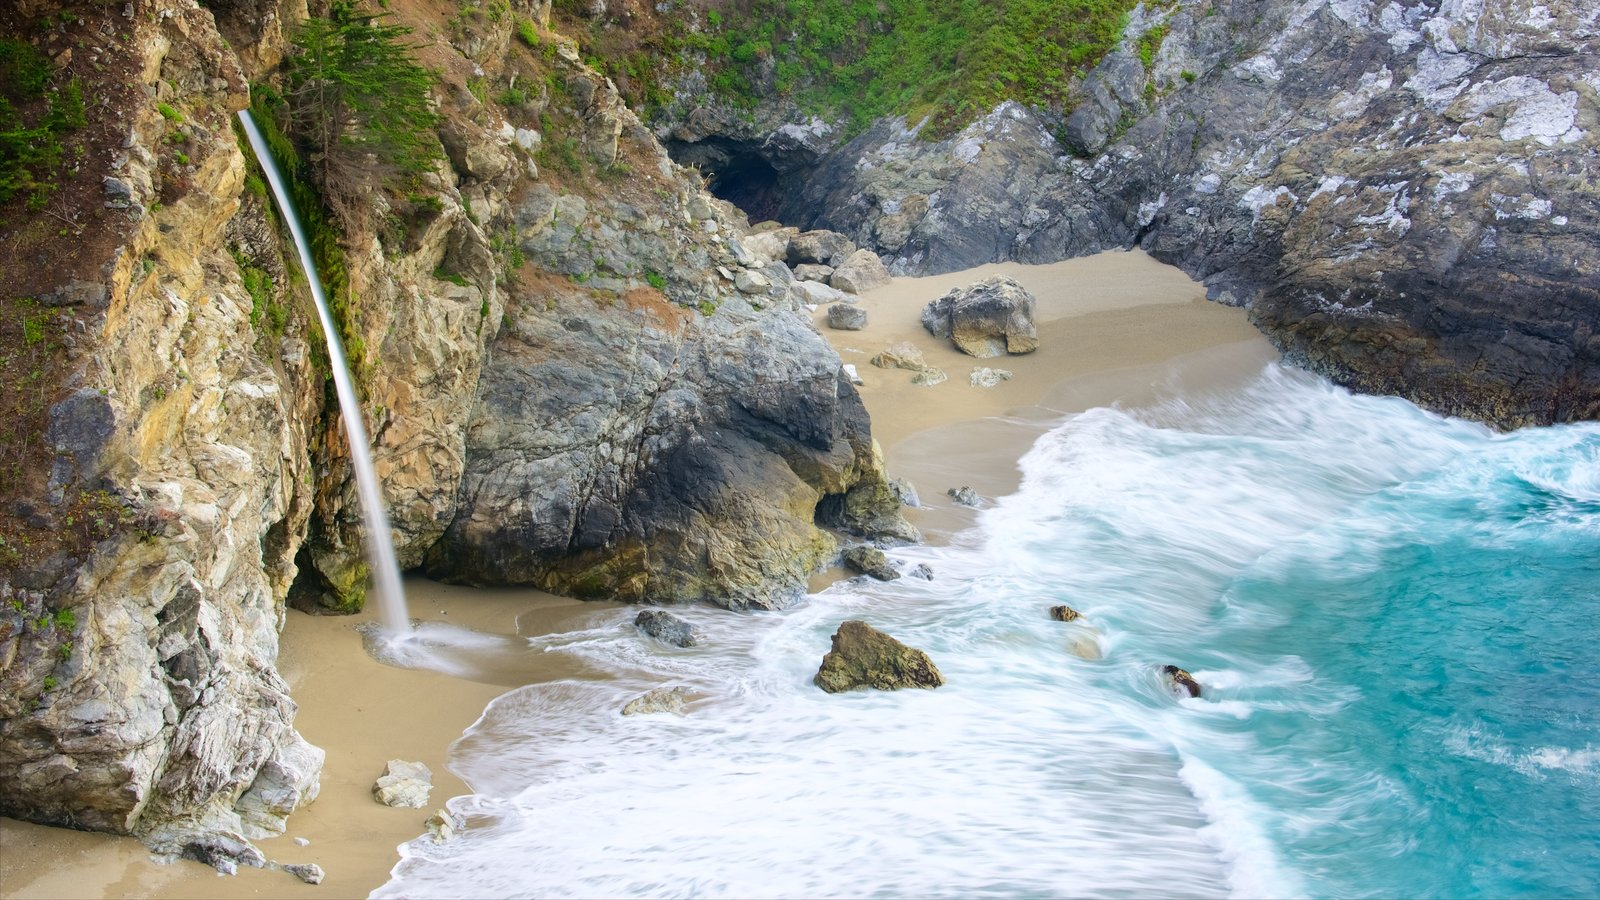 McWay Falls showing rocky coastline and a beach